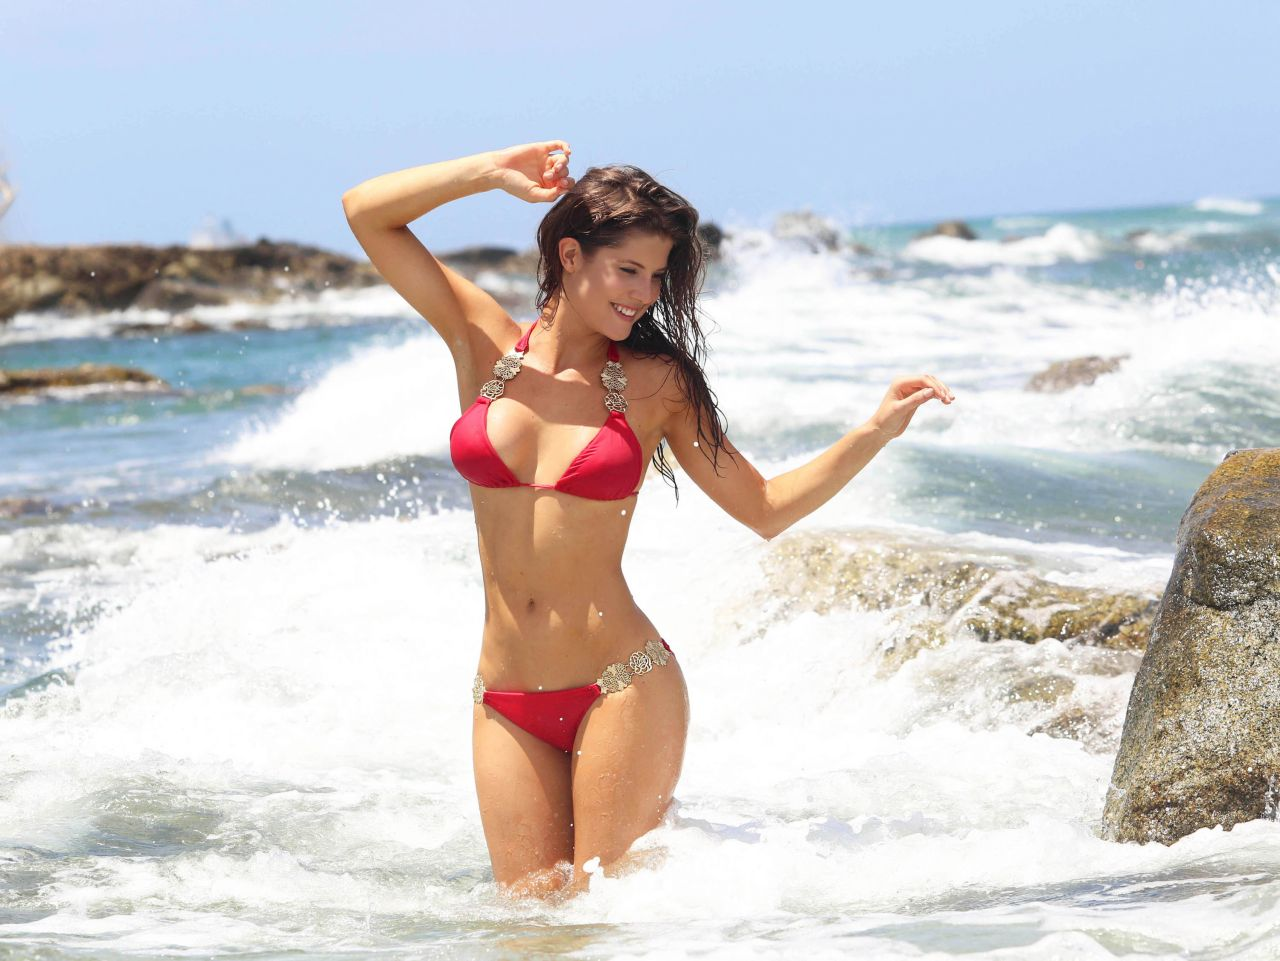 Amanda Cerny Bikini Photoshoot - on the Set of a Music Video in Aruba